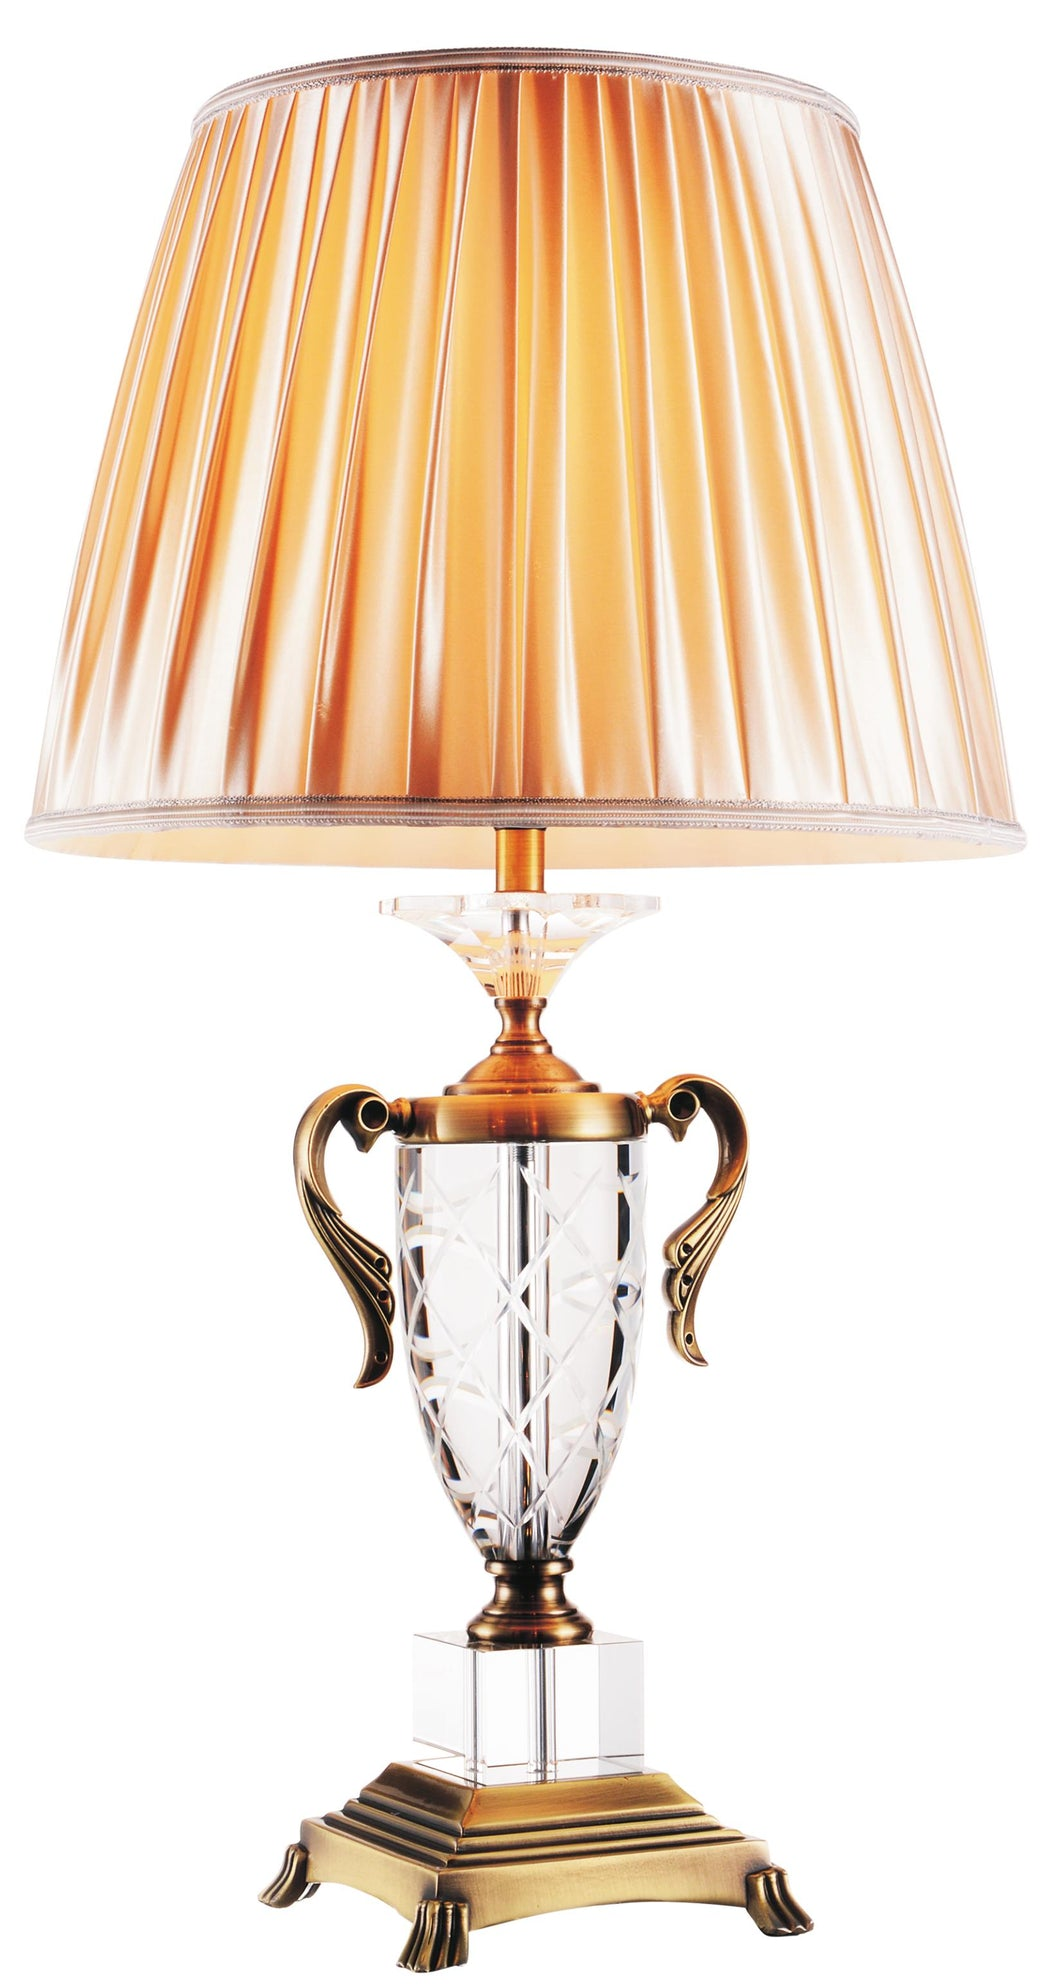 1 Light Table Lamp with Antique Brass finish